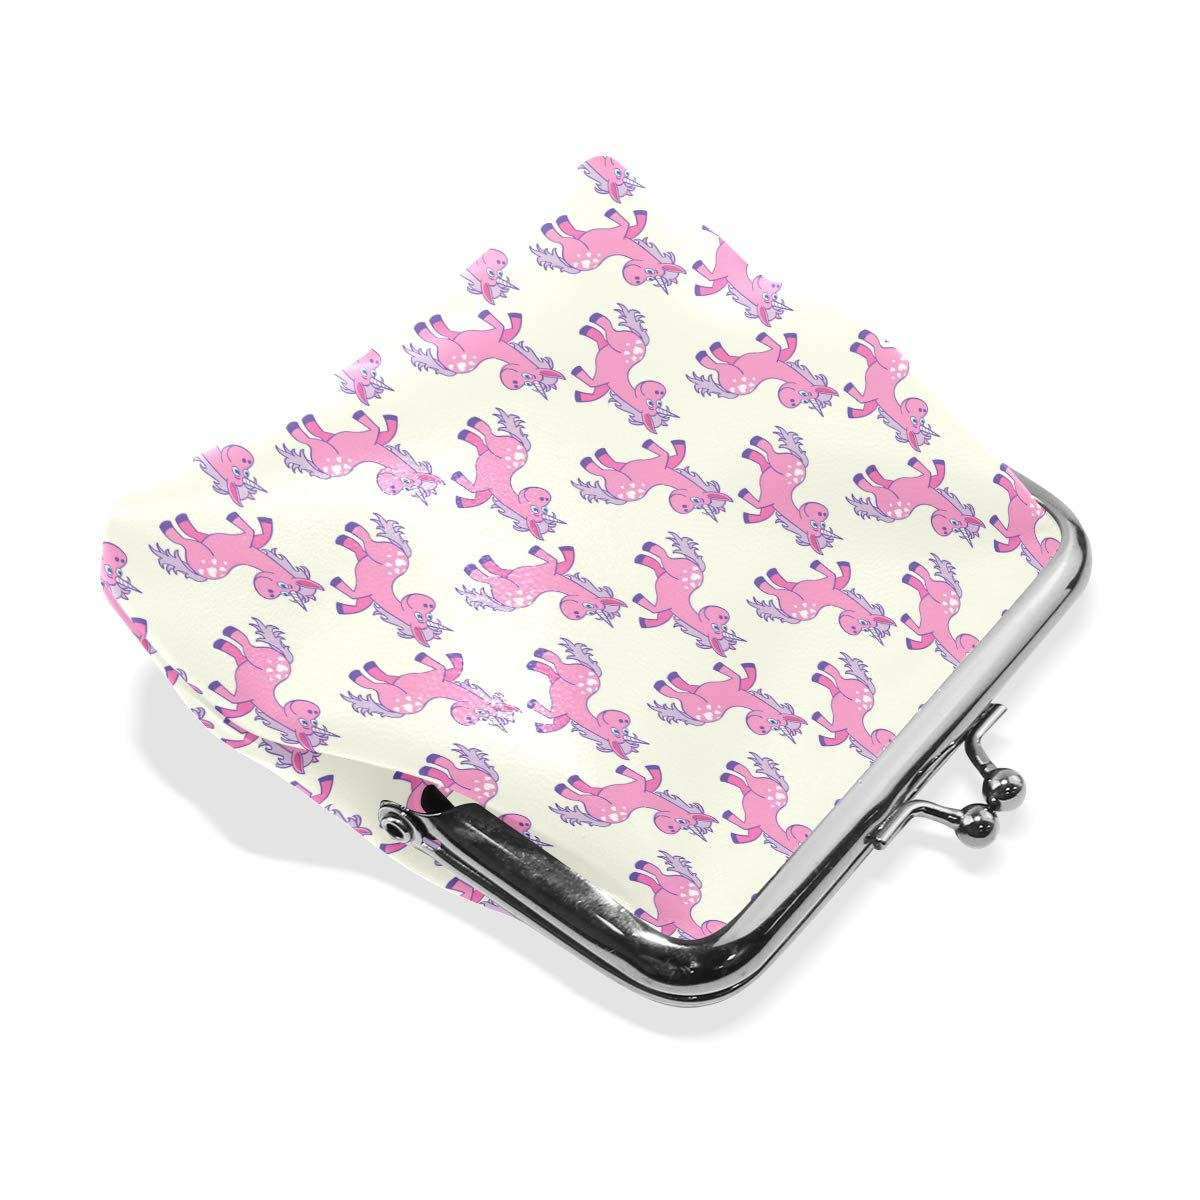 Exquisite Buckle Coin Purses Unicorn Looks Back With Love Pink Mini Wallet Key Card Holder Purse for Women